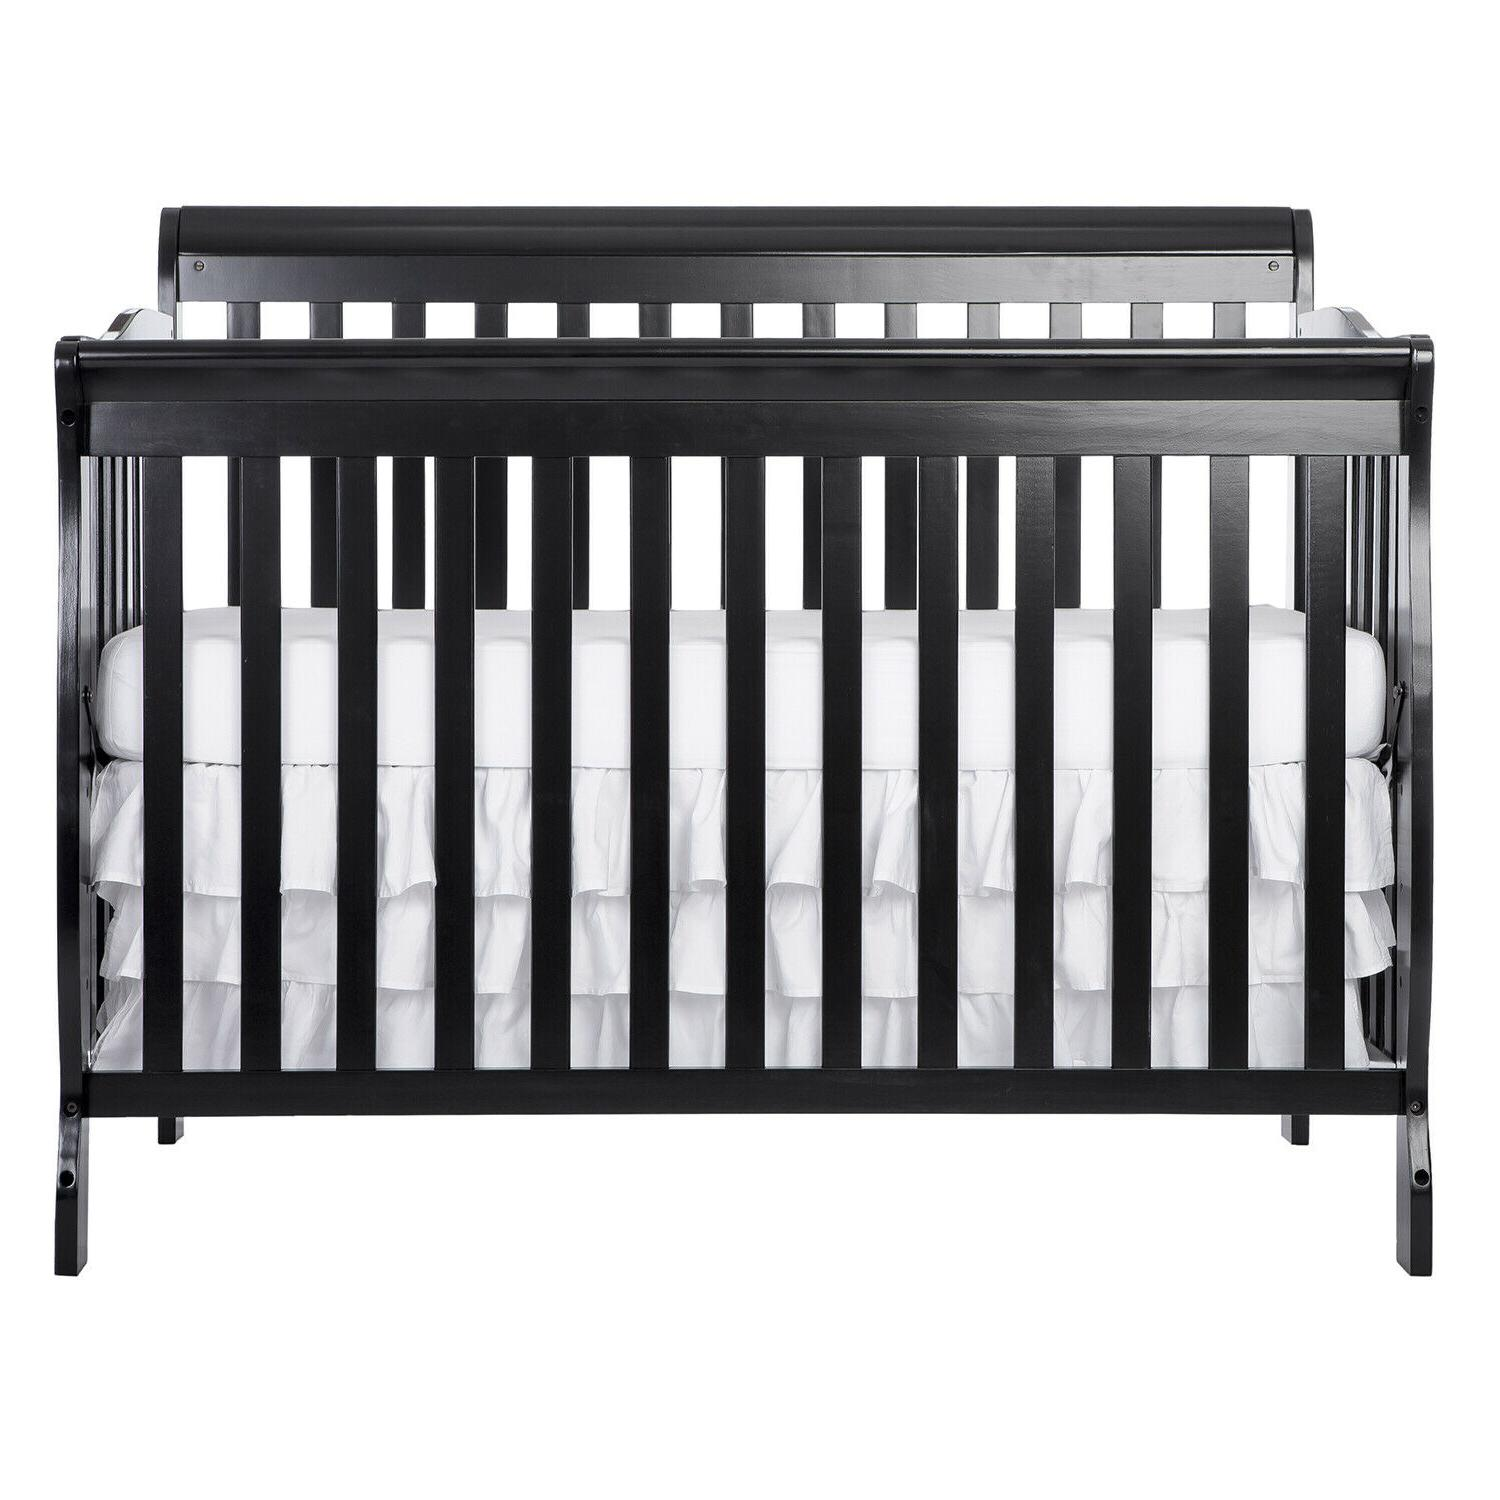 Convertible Bed 5-in-1 Nursery Furniture